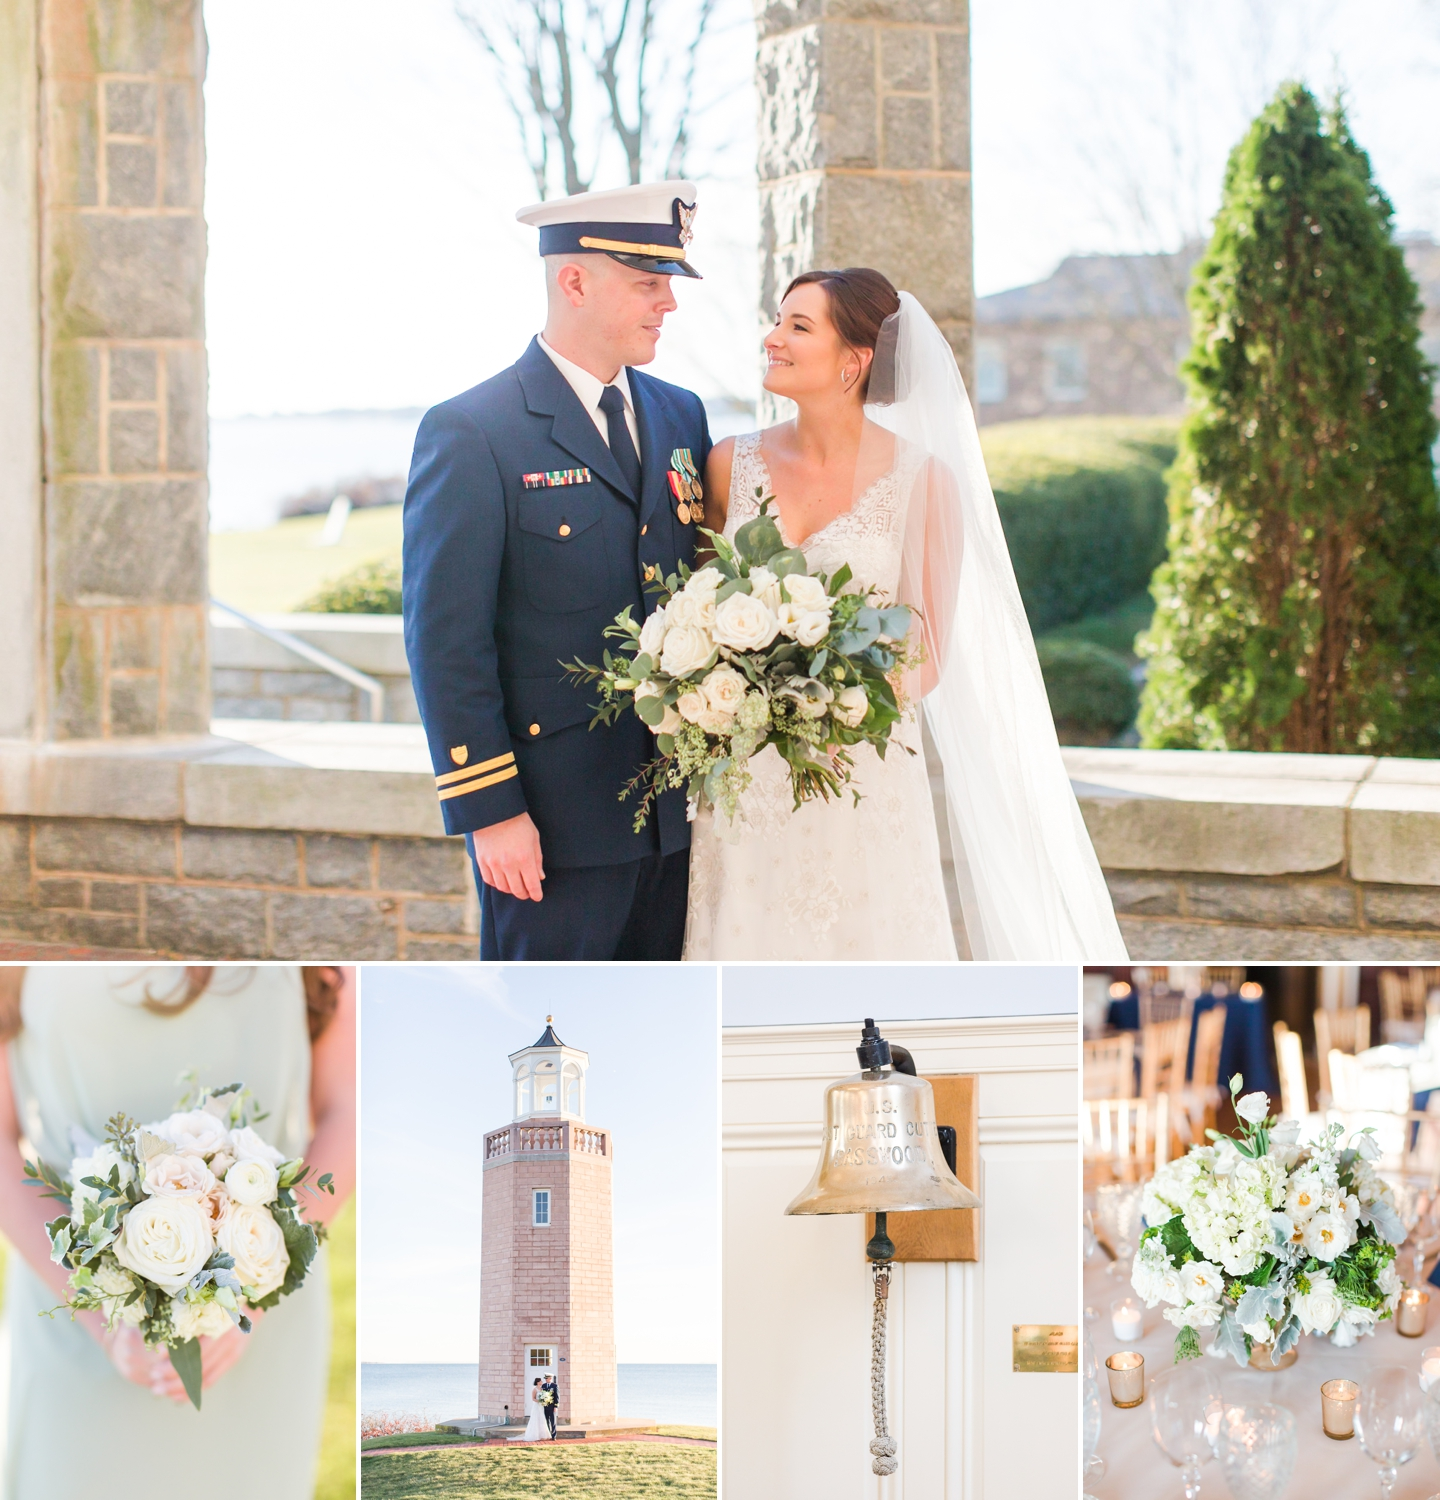 branford-house-wedding-groton-connecticut-photographer-shaina-lee-photography-photo.jpg